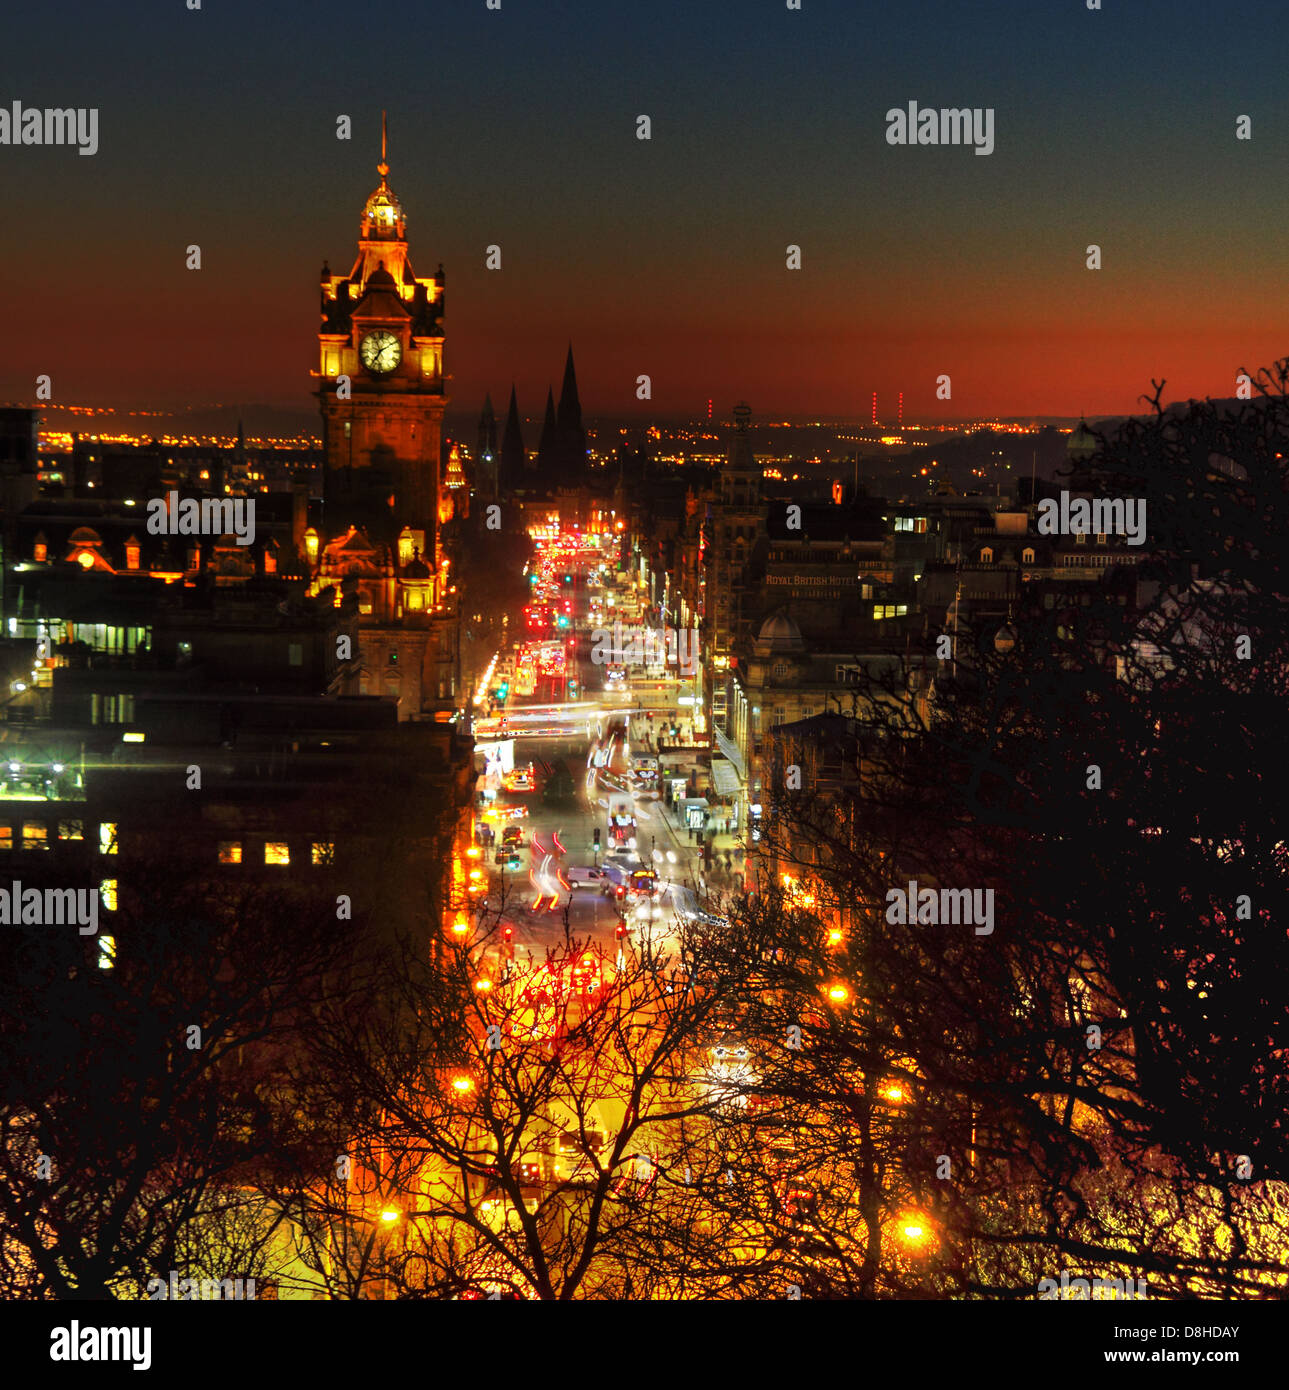 glowing,scotland,scots,scottish,independence,independance,prrinces,street,winter,victorian,old,town,from,calton,caltan,carlton,carltan,hill,tourist,tourism,parliament,traffic,late,at,night,nightime,time,glow,from,early,evening,traffic,glow,glowing,skyline,gotonysmith,Buy Pictures of,Buy Images Of